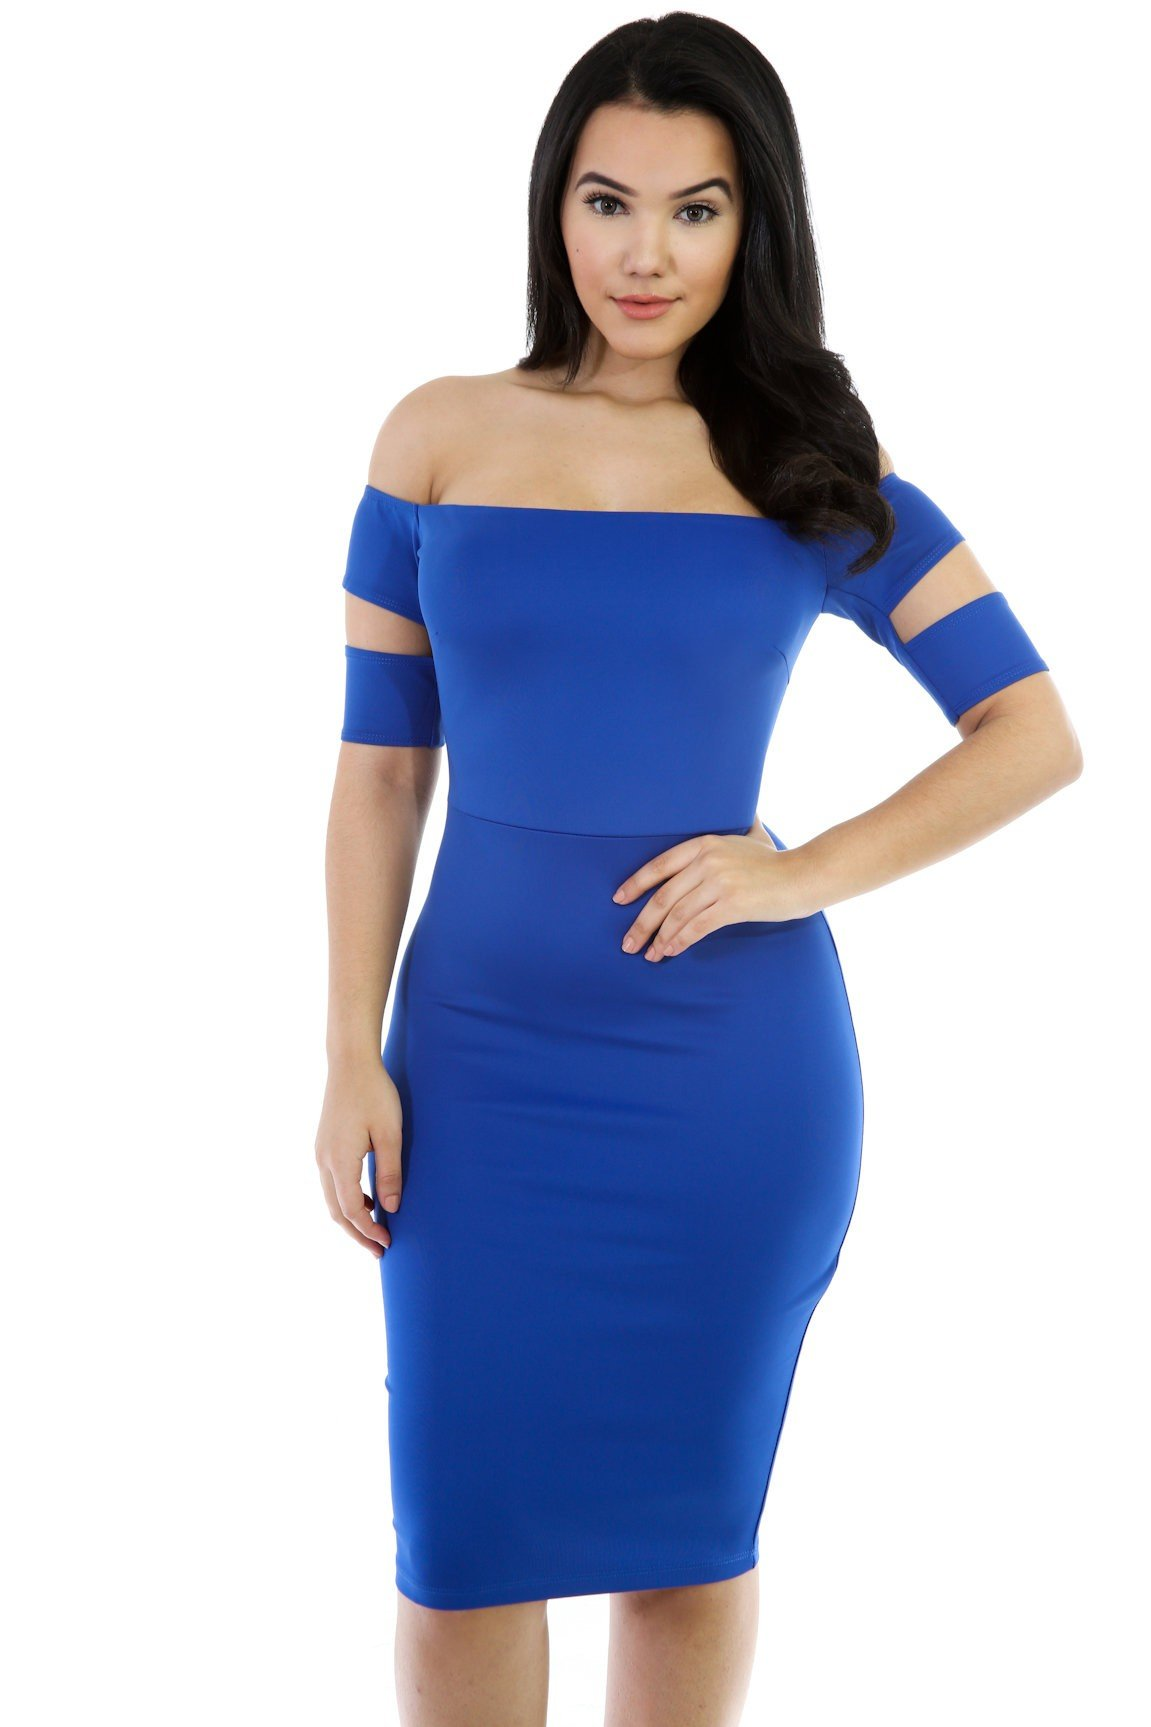 This Is Me Strapless Bodycon Dress | vendor-unknown